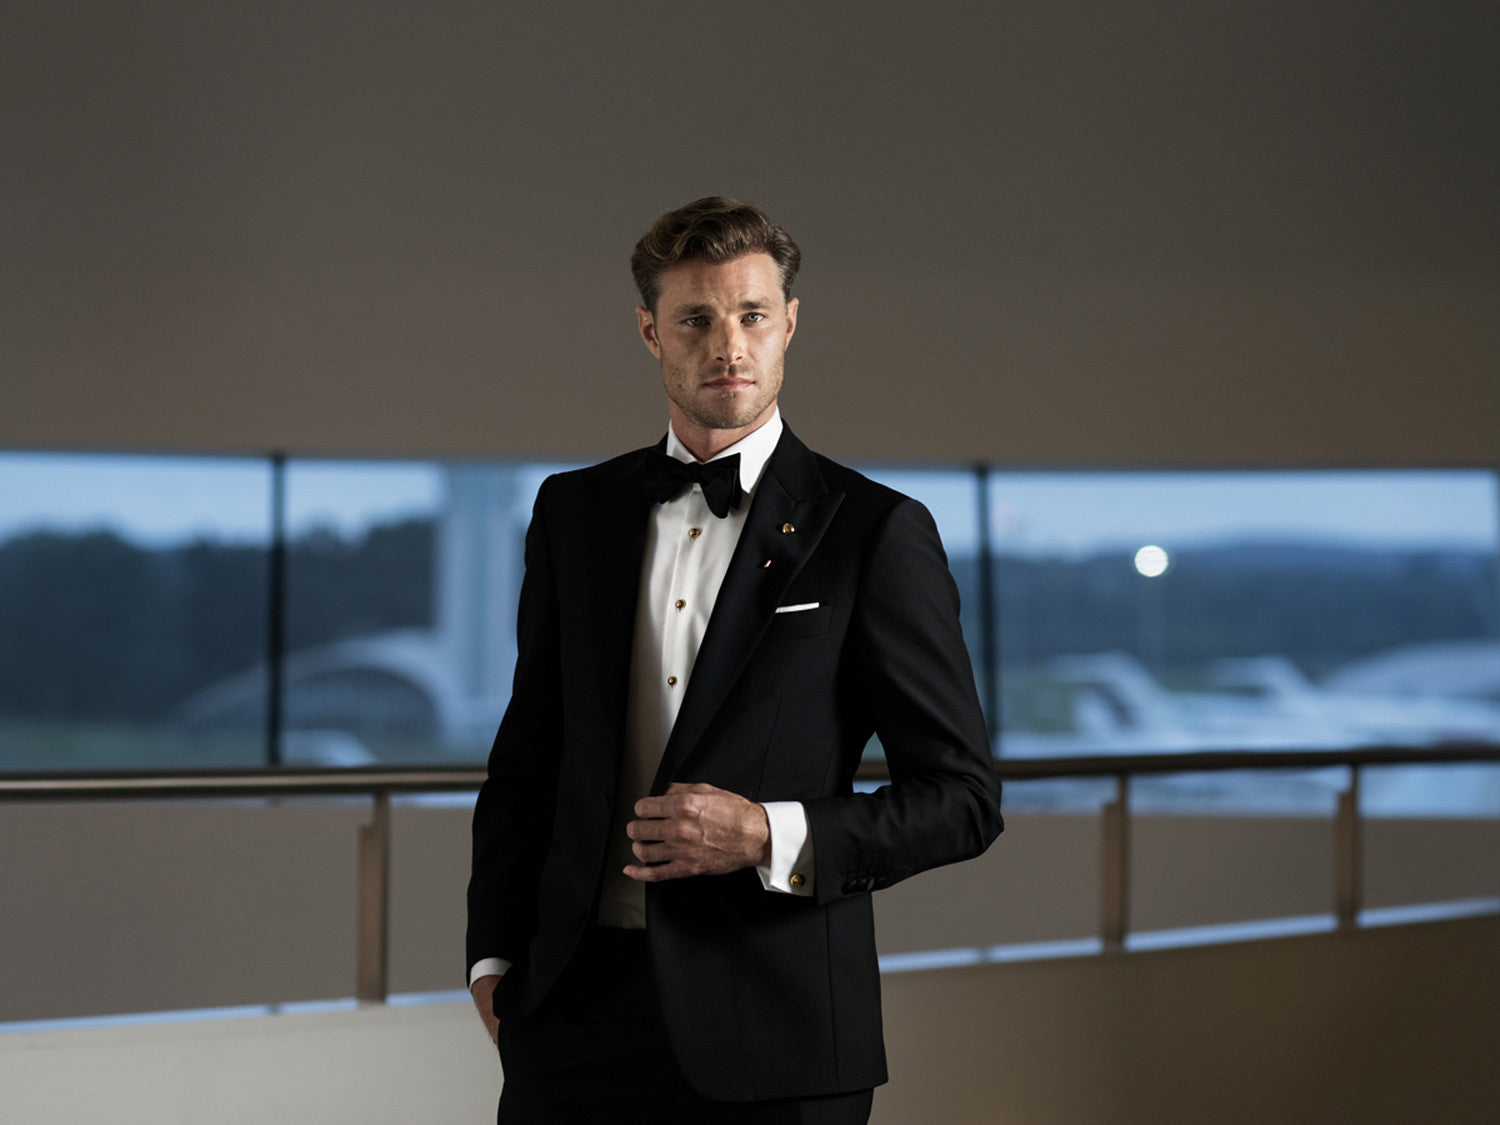 black tie dress code | mens-accessories | Alice-Made-This